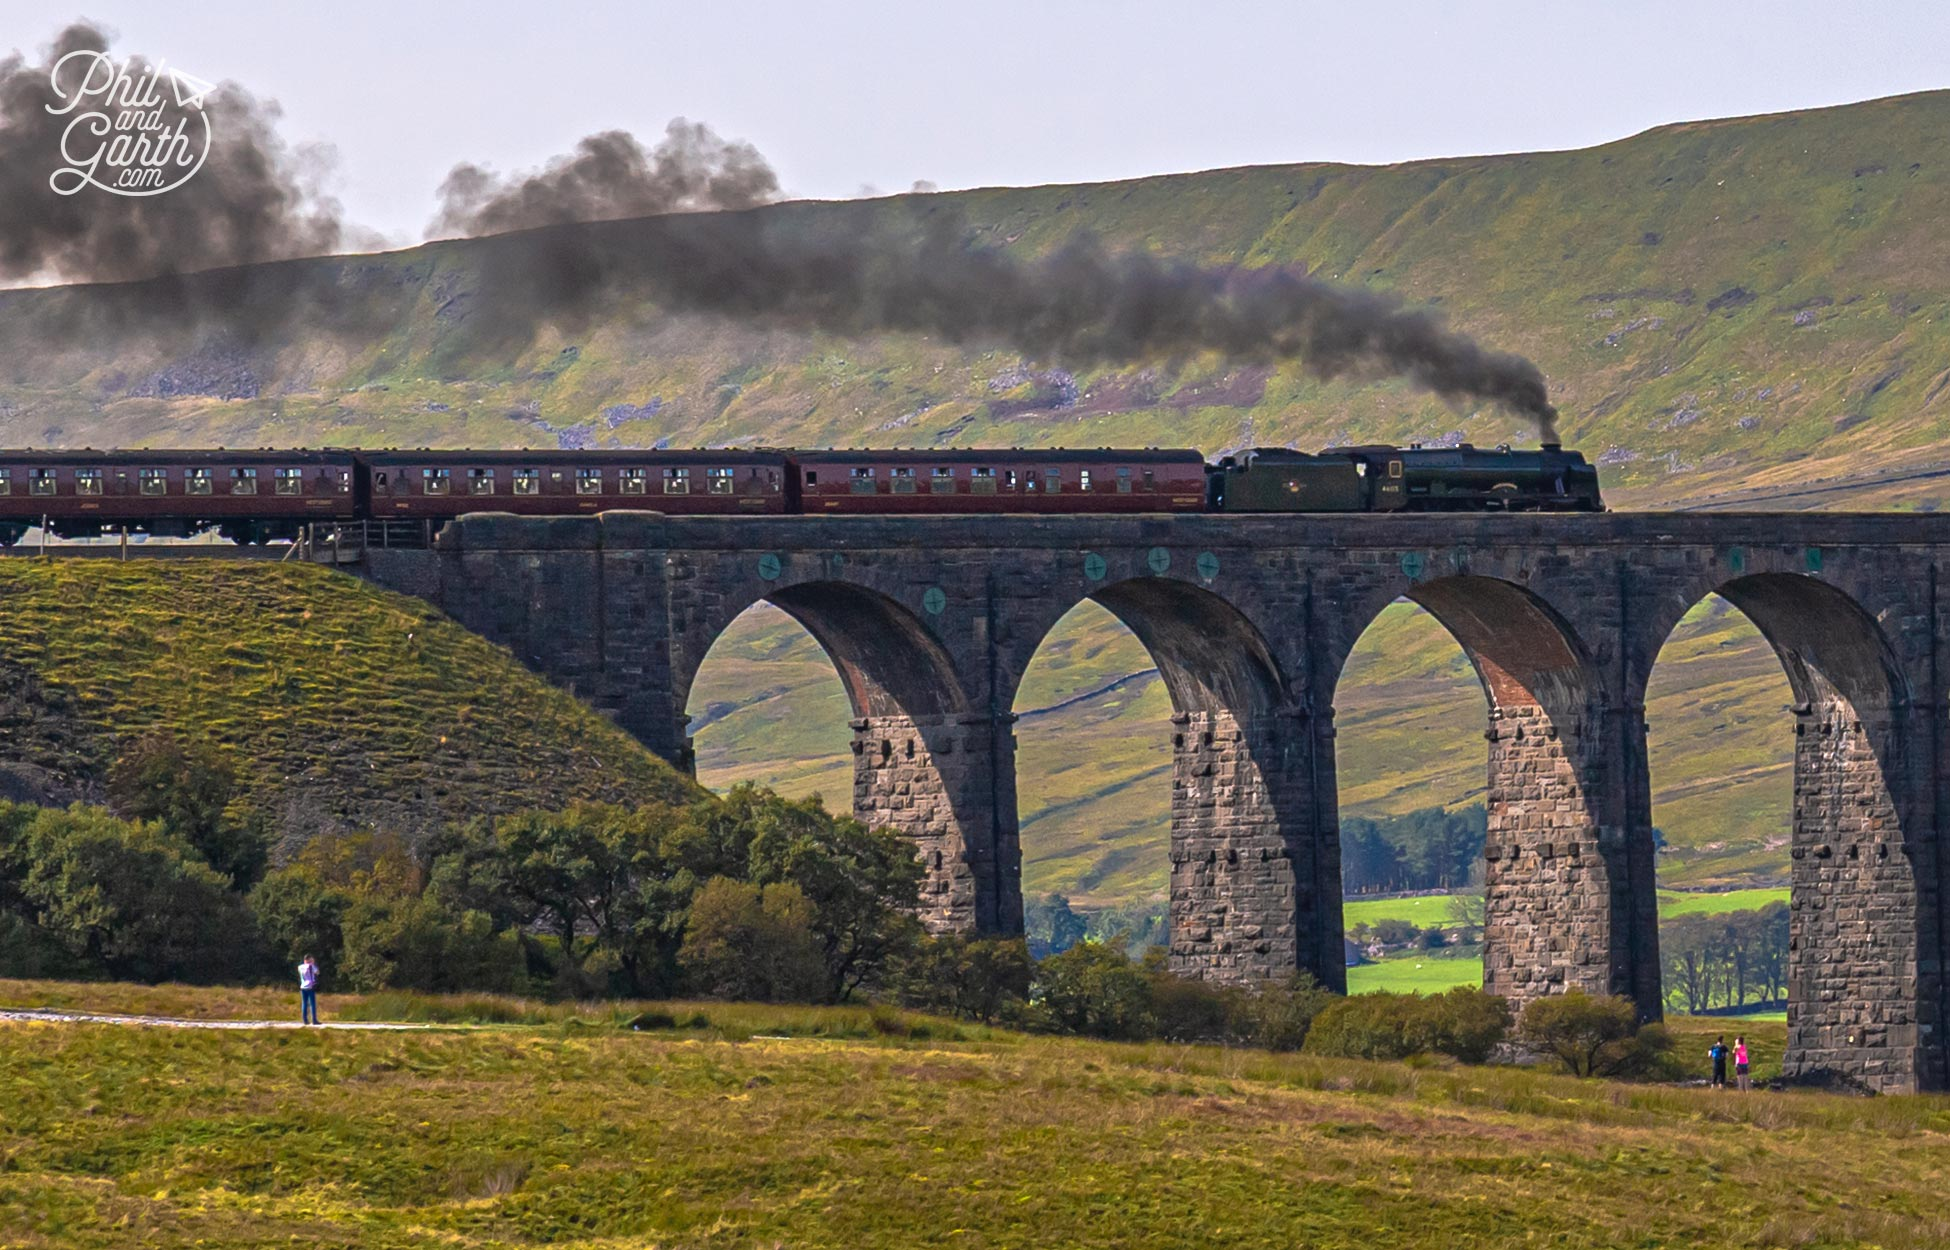 By total fluke we saw the heritage steam train cross the viaduct - talk about timing!